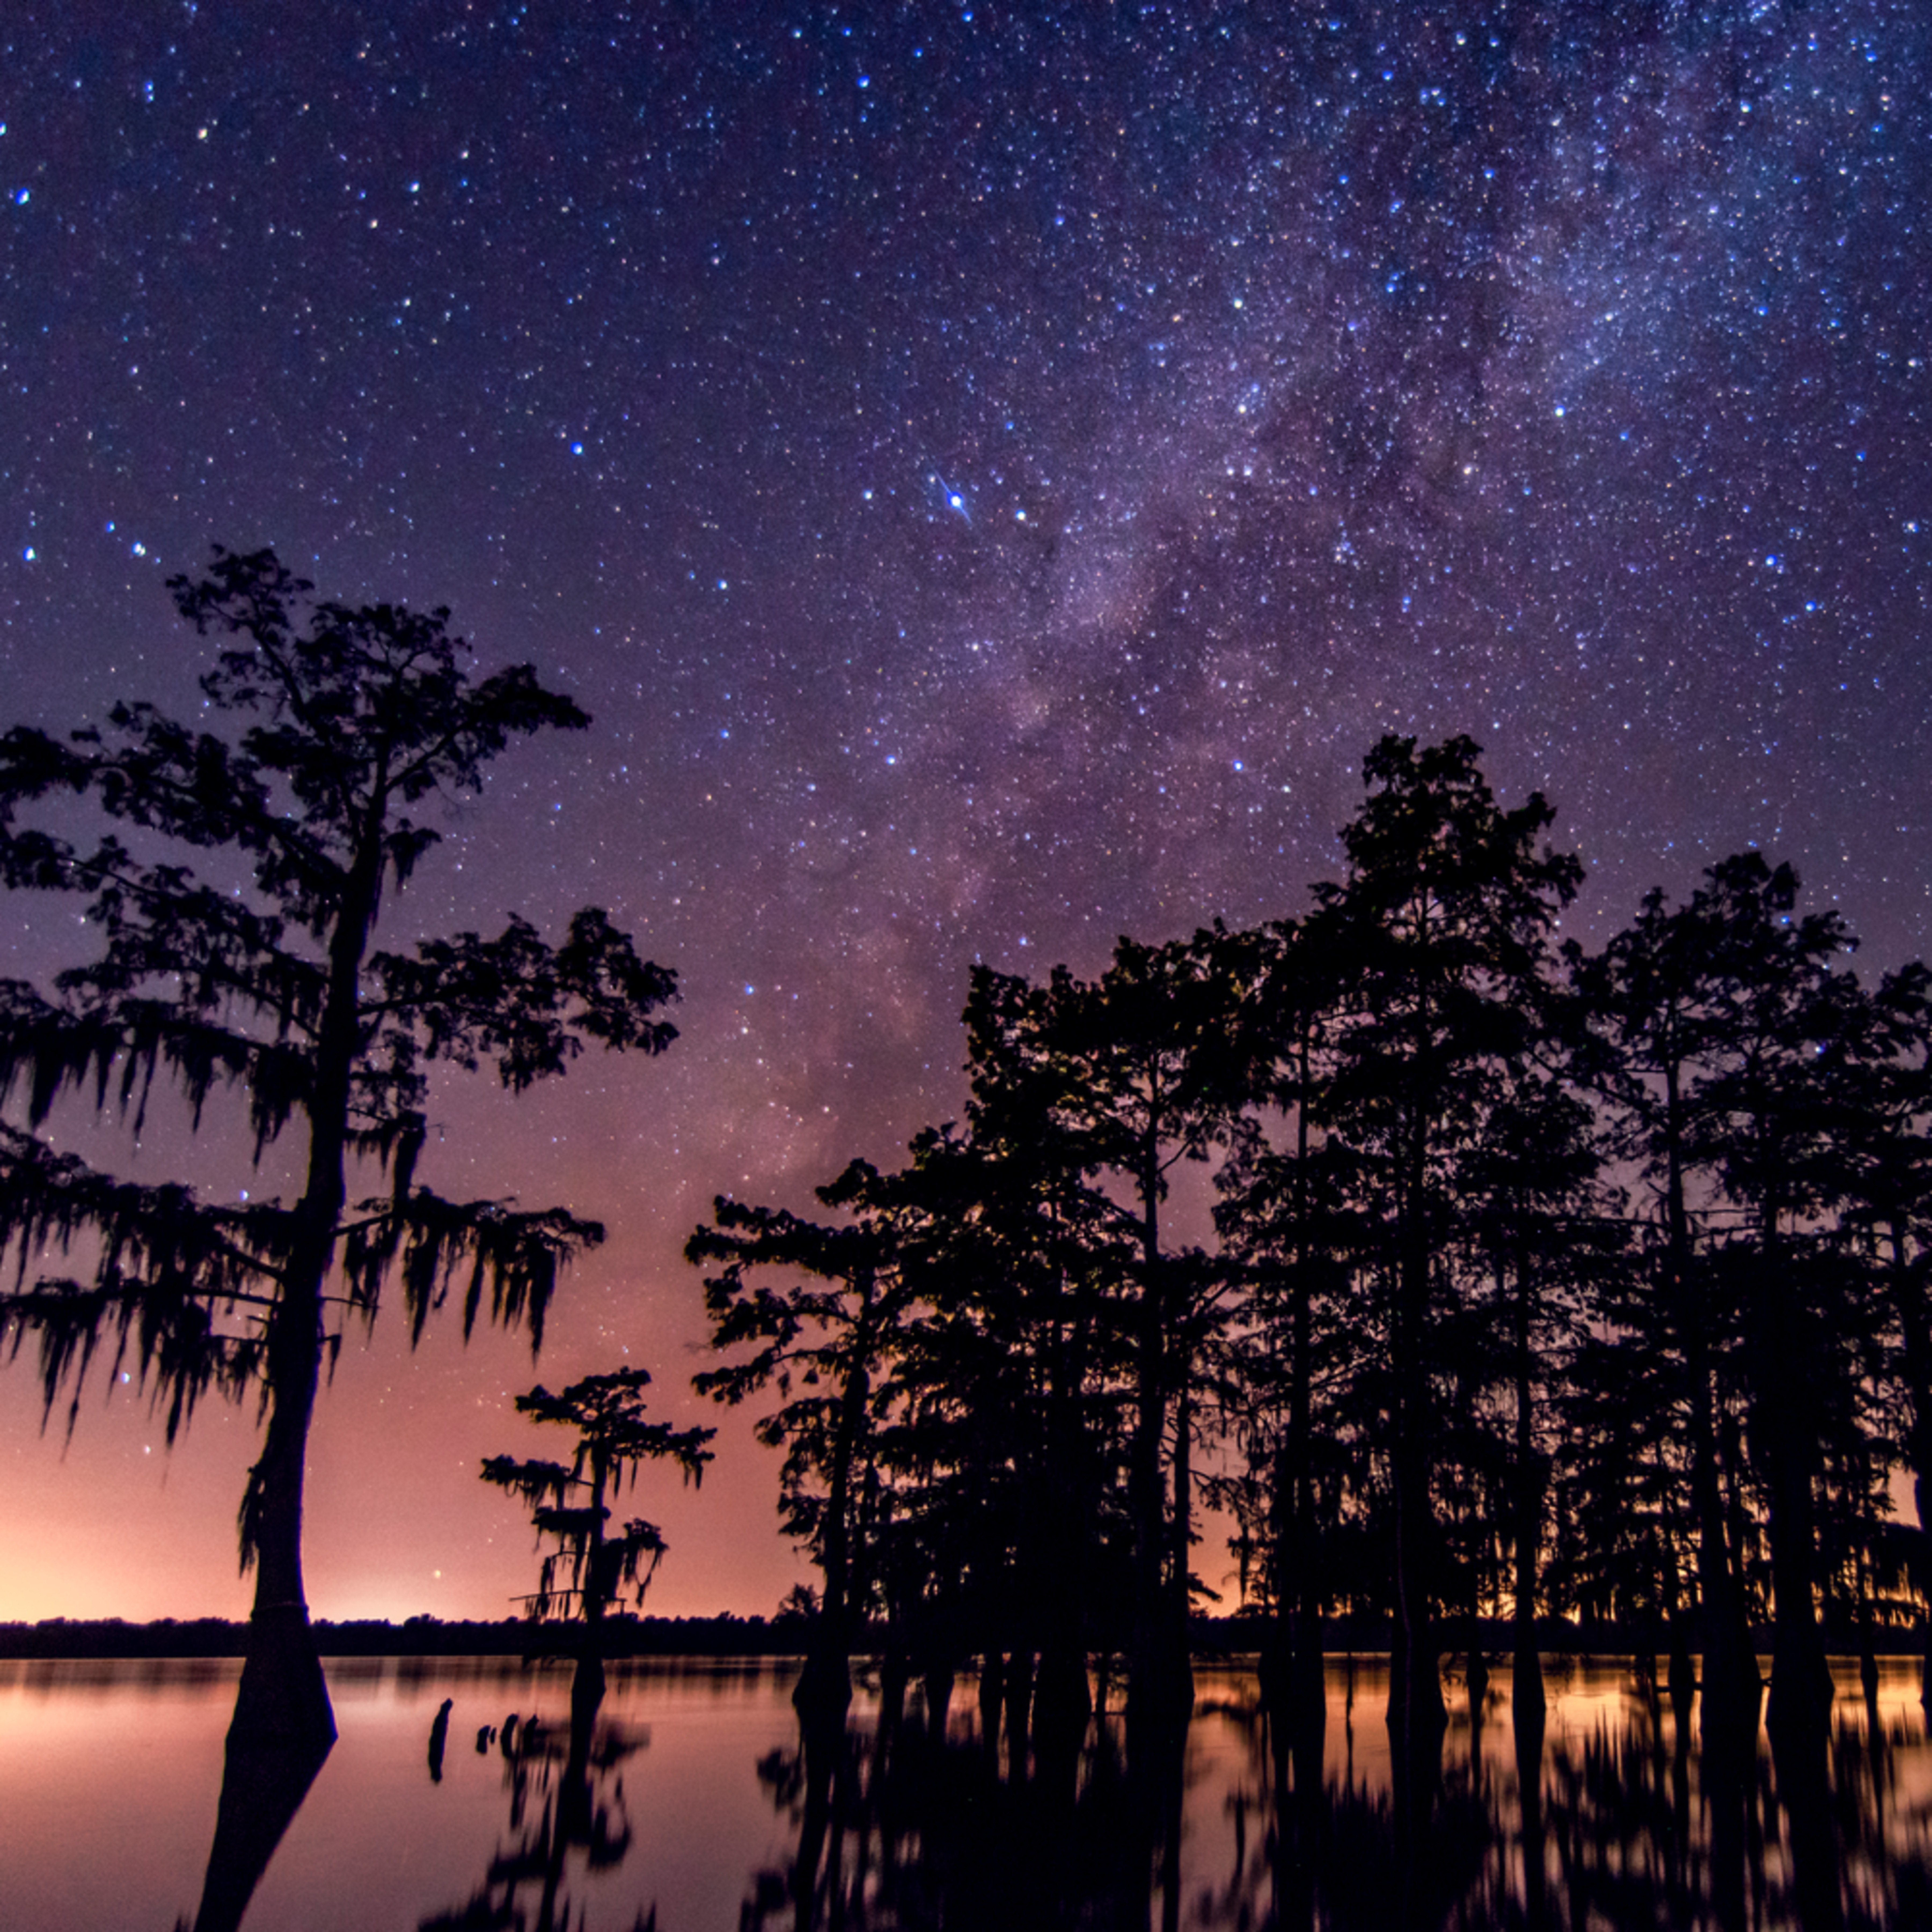 Andy crawford photography atchafalaya basin 005 elul5q